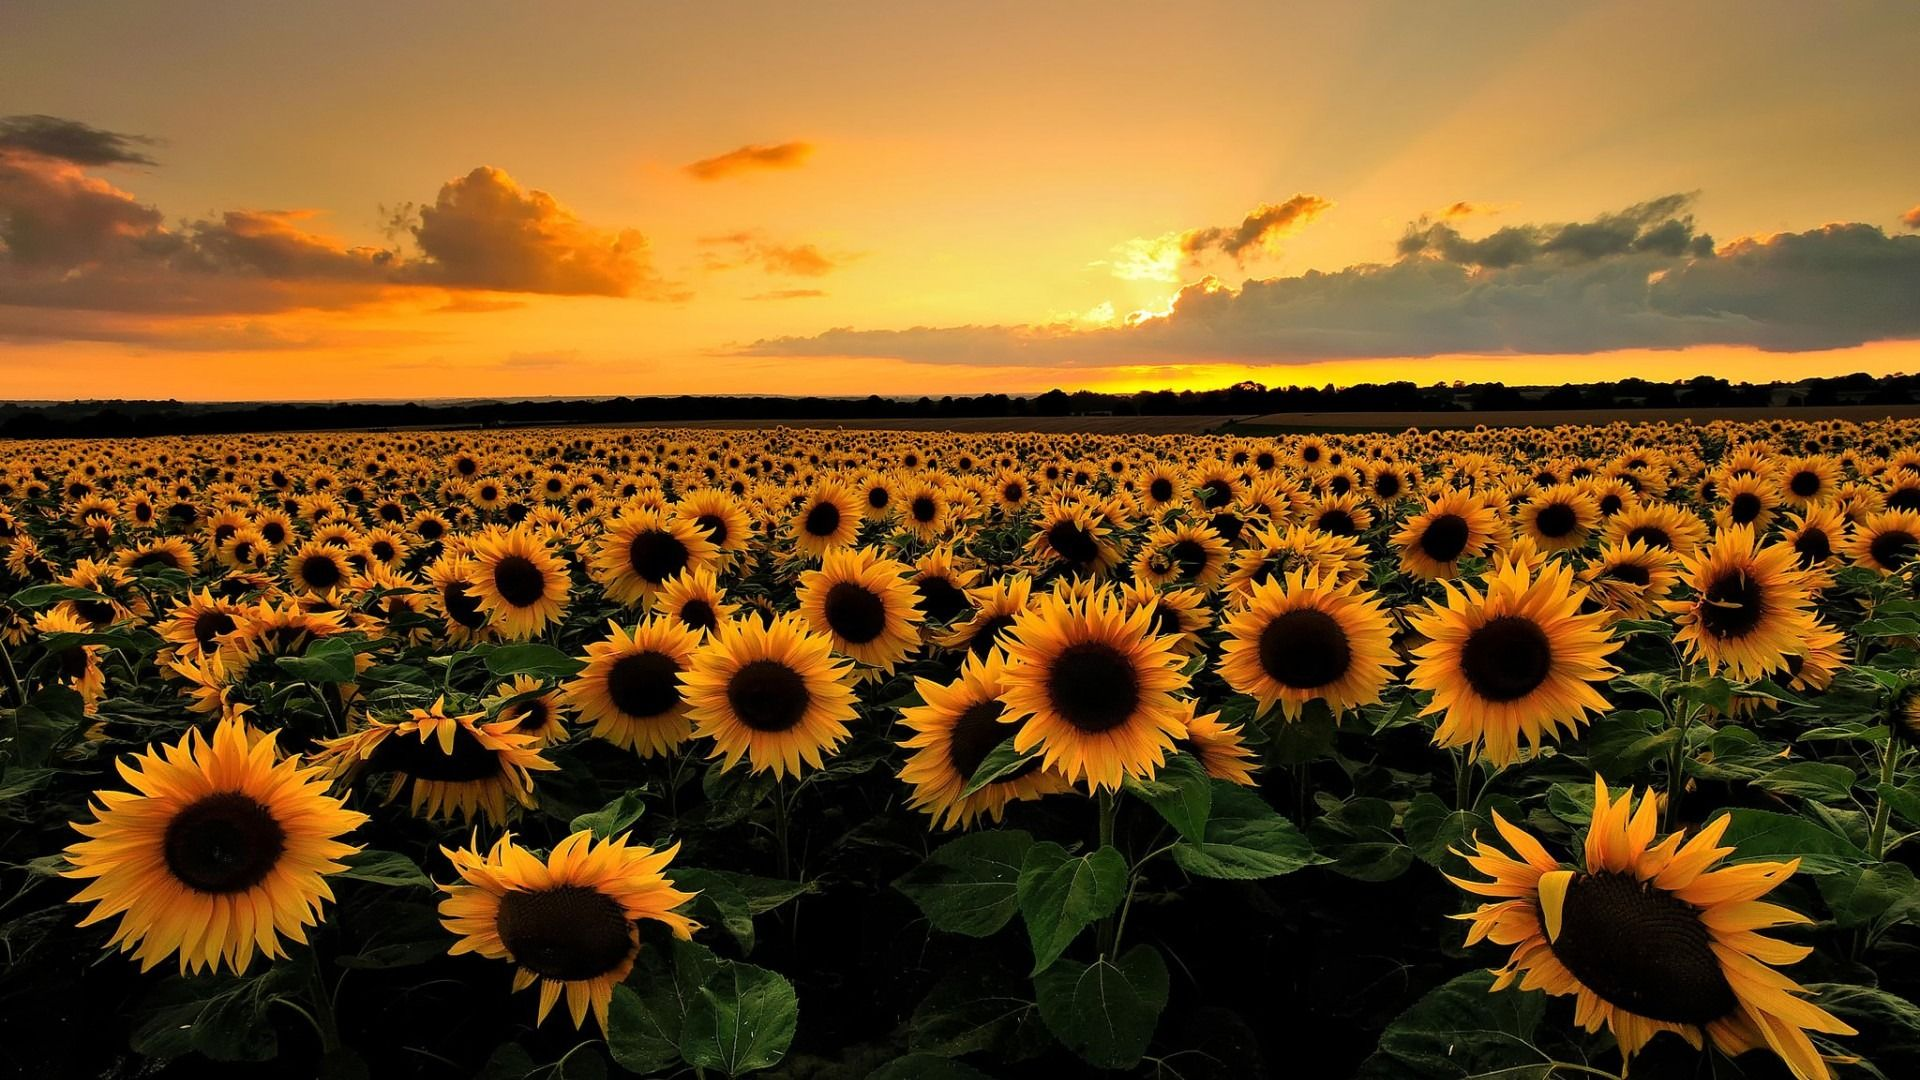 Sunflower Wallpaper Images For Background 1920x1080 Px 53676 KB